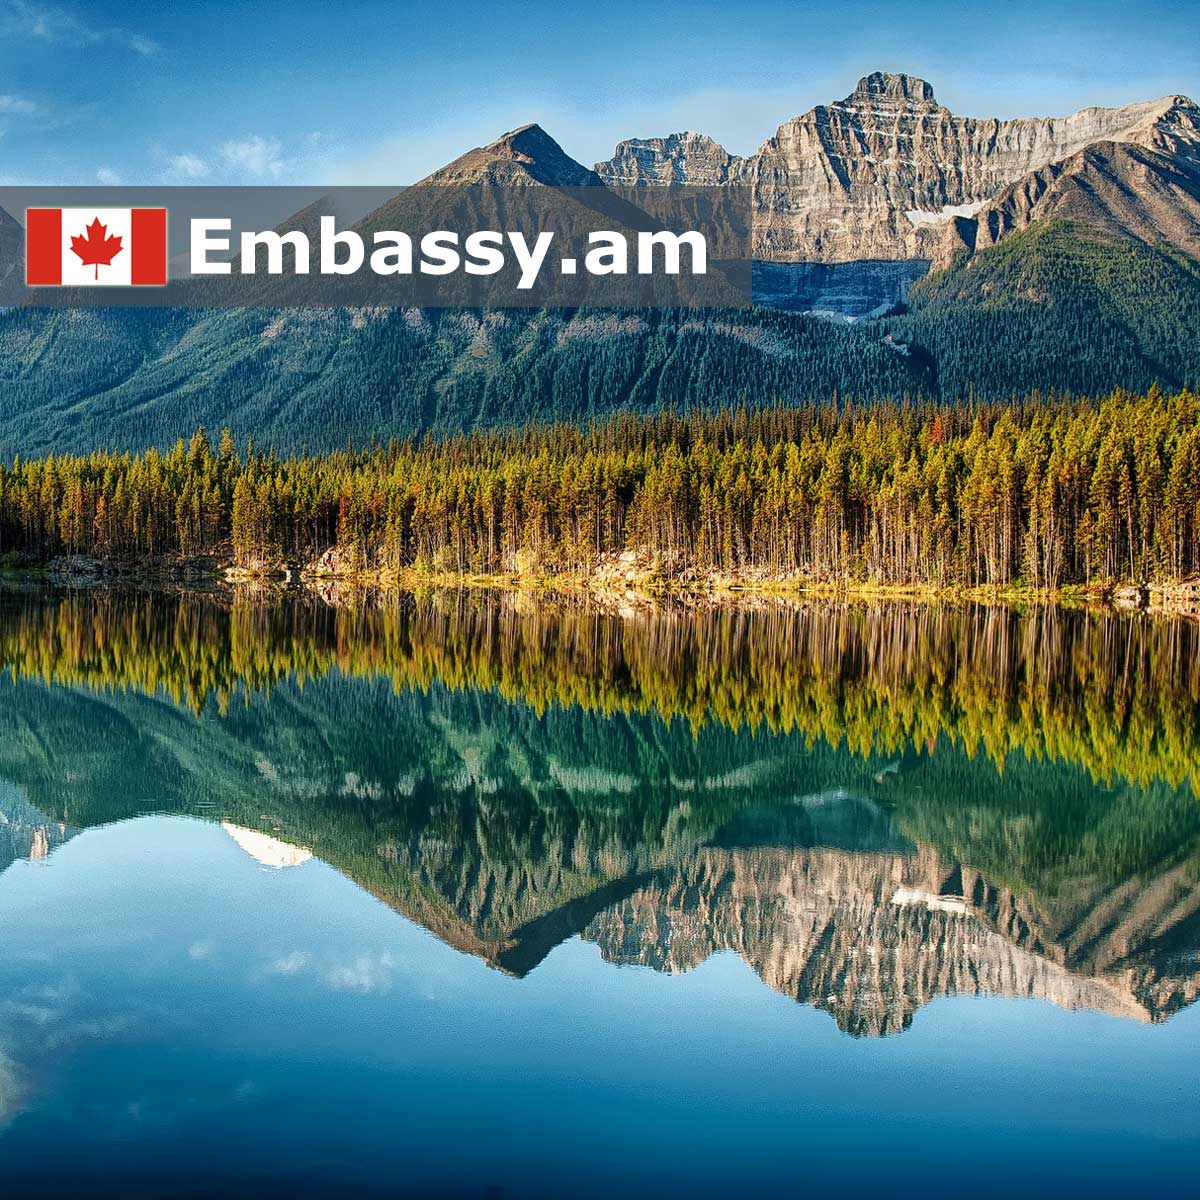 Banff - Hotels in Canada - Embassy.am